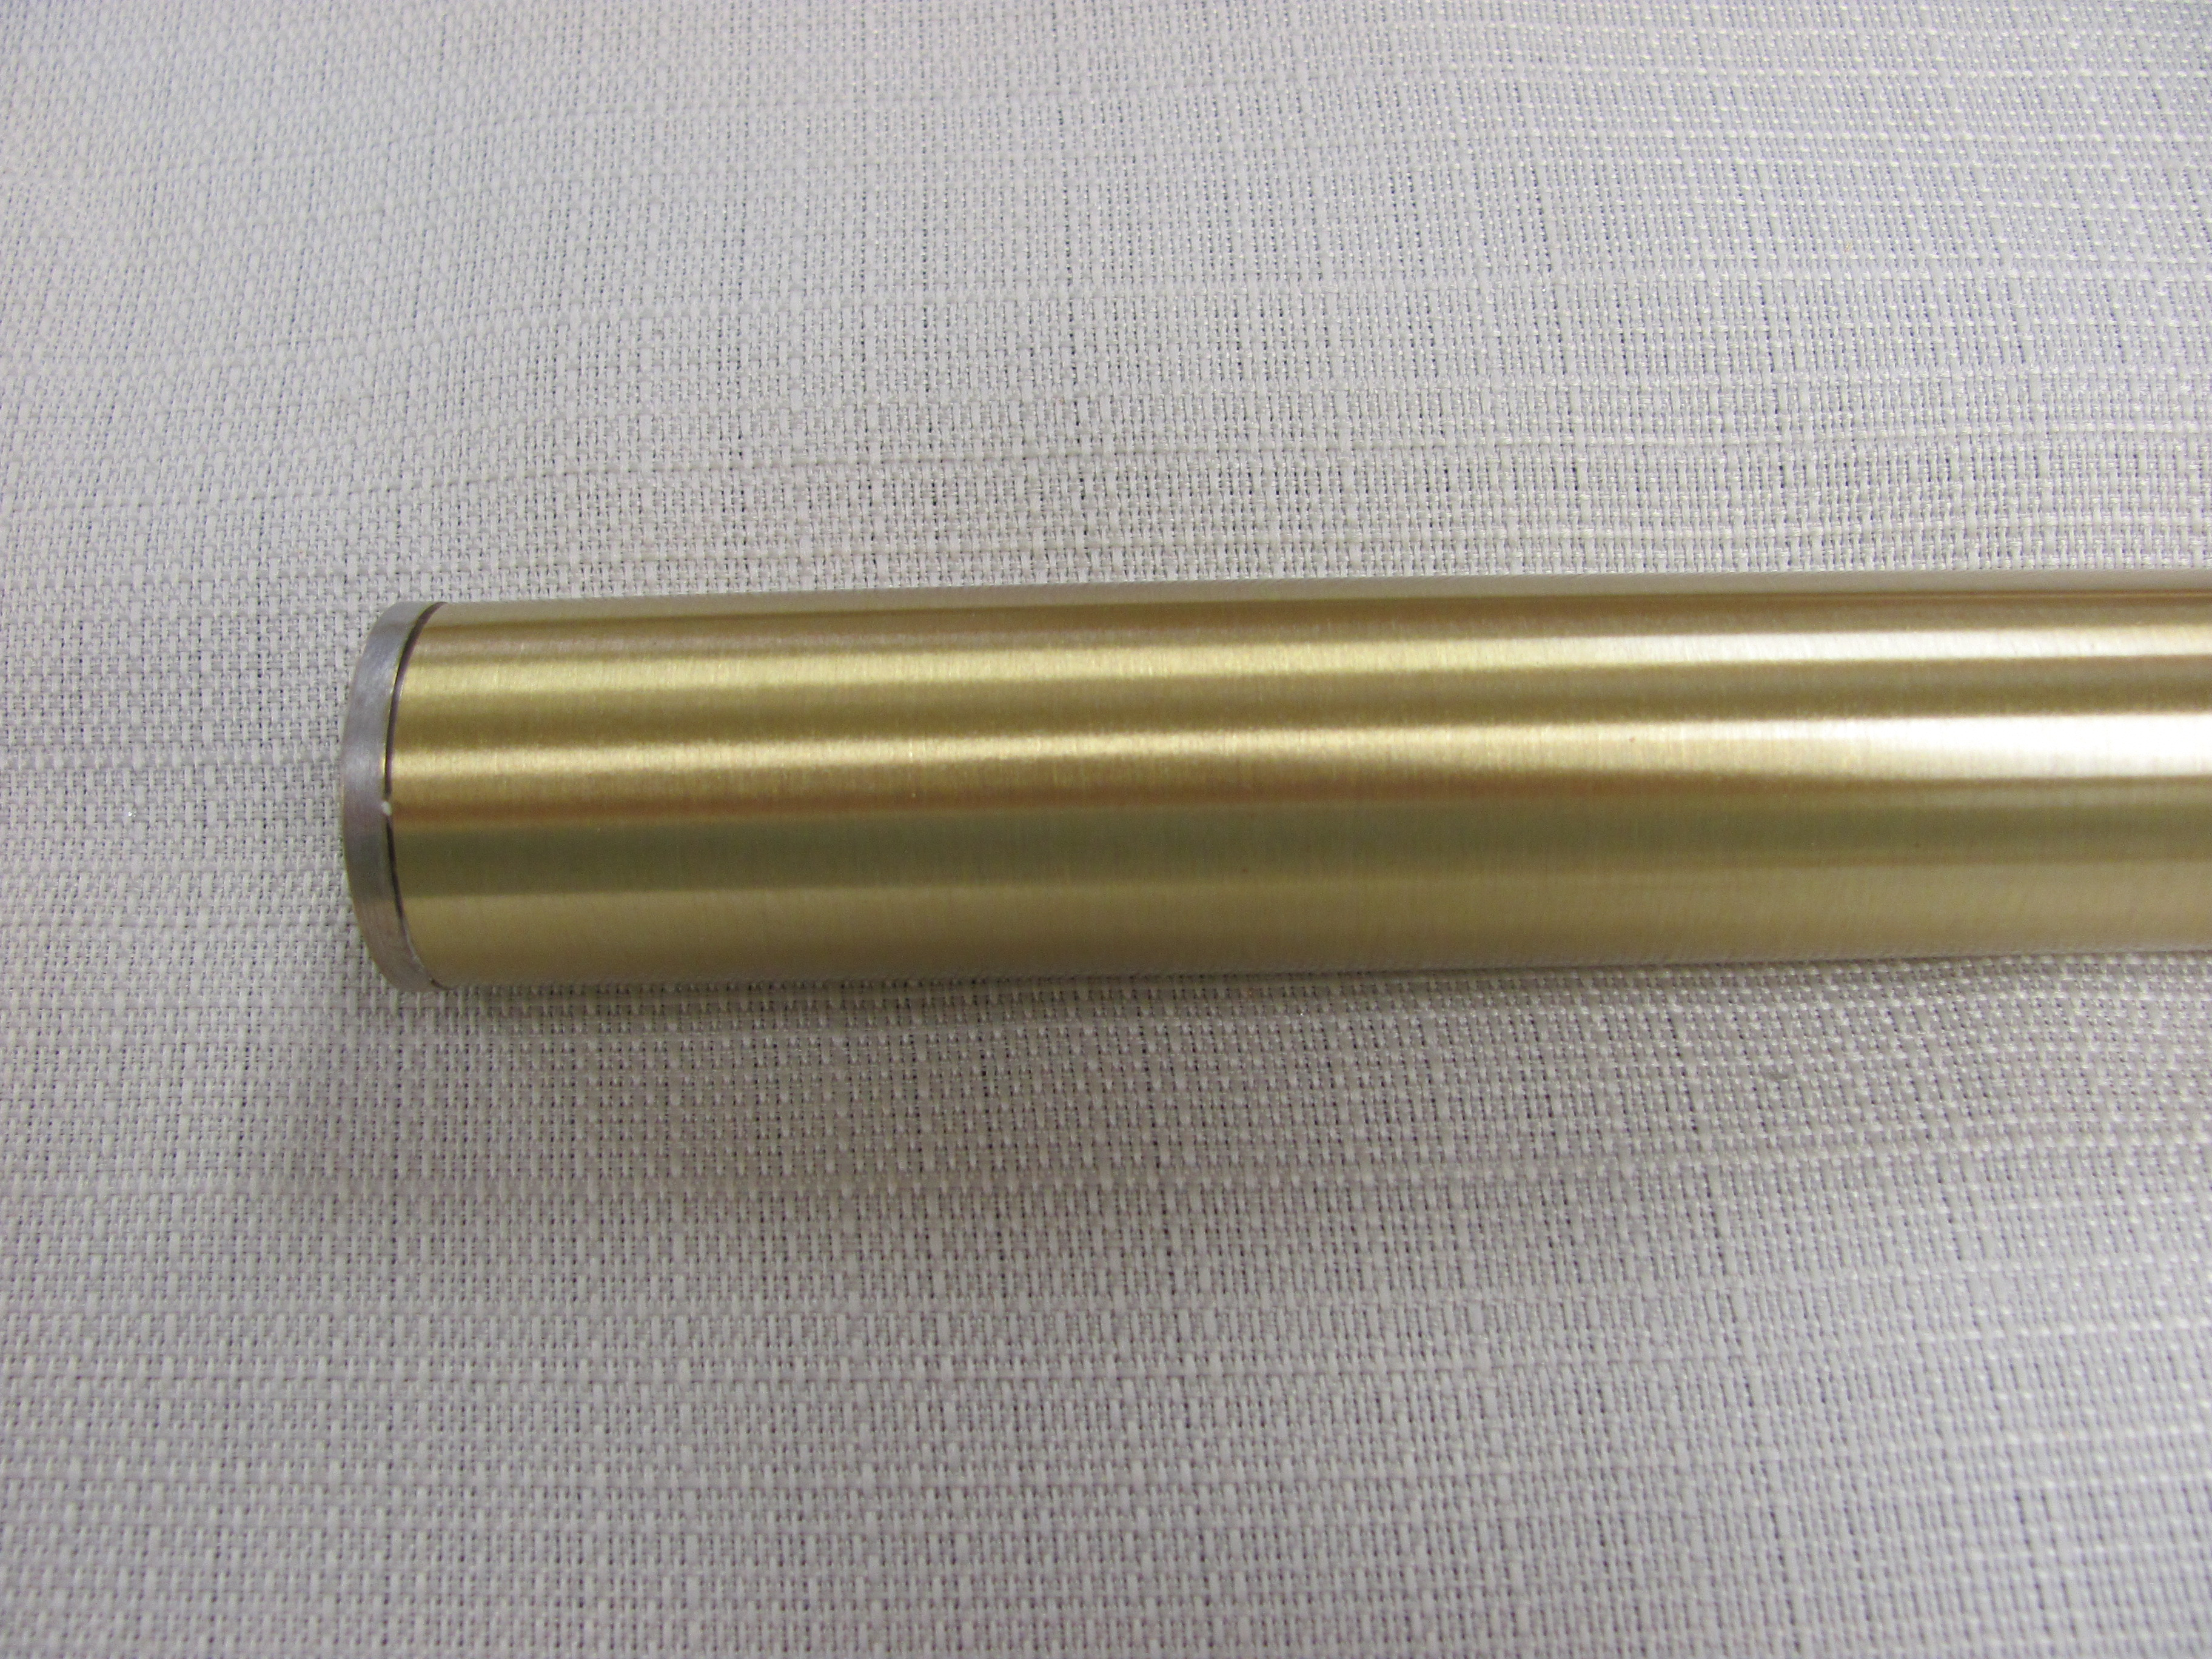 1 Inch Brushed Brass with Brushed Nickel Flush End Cap